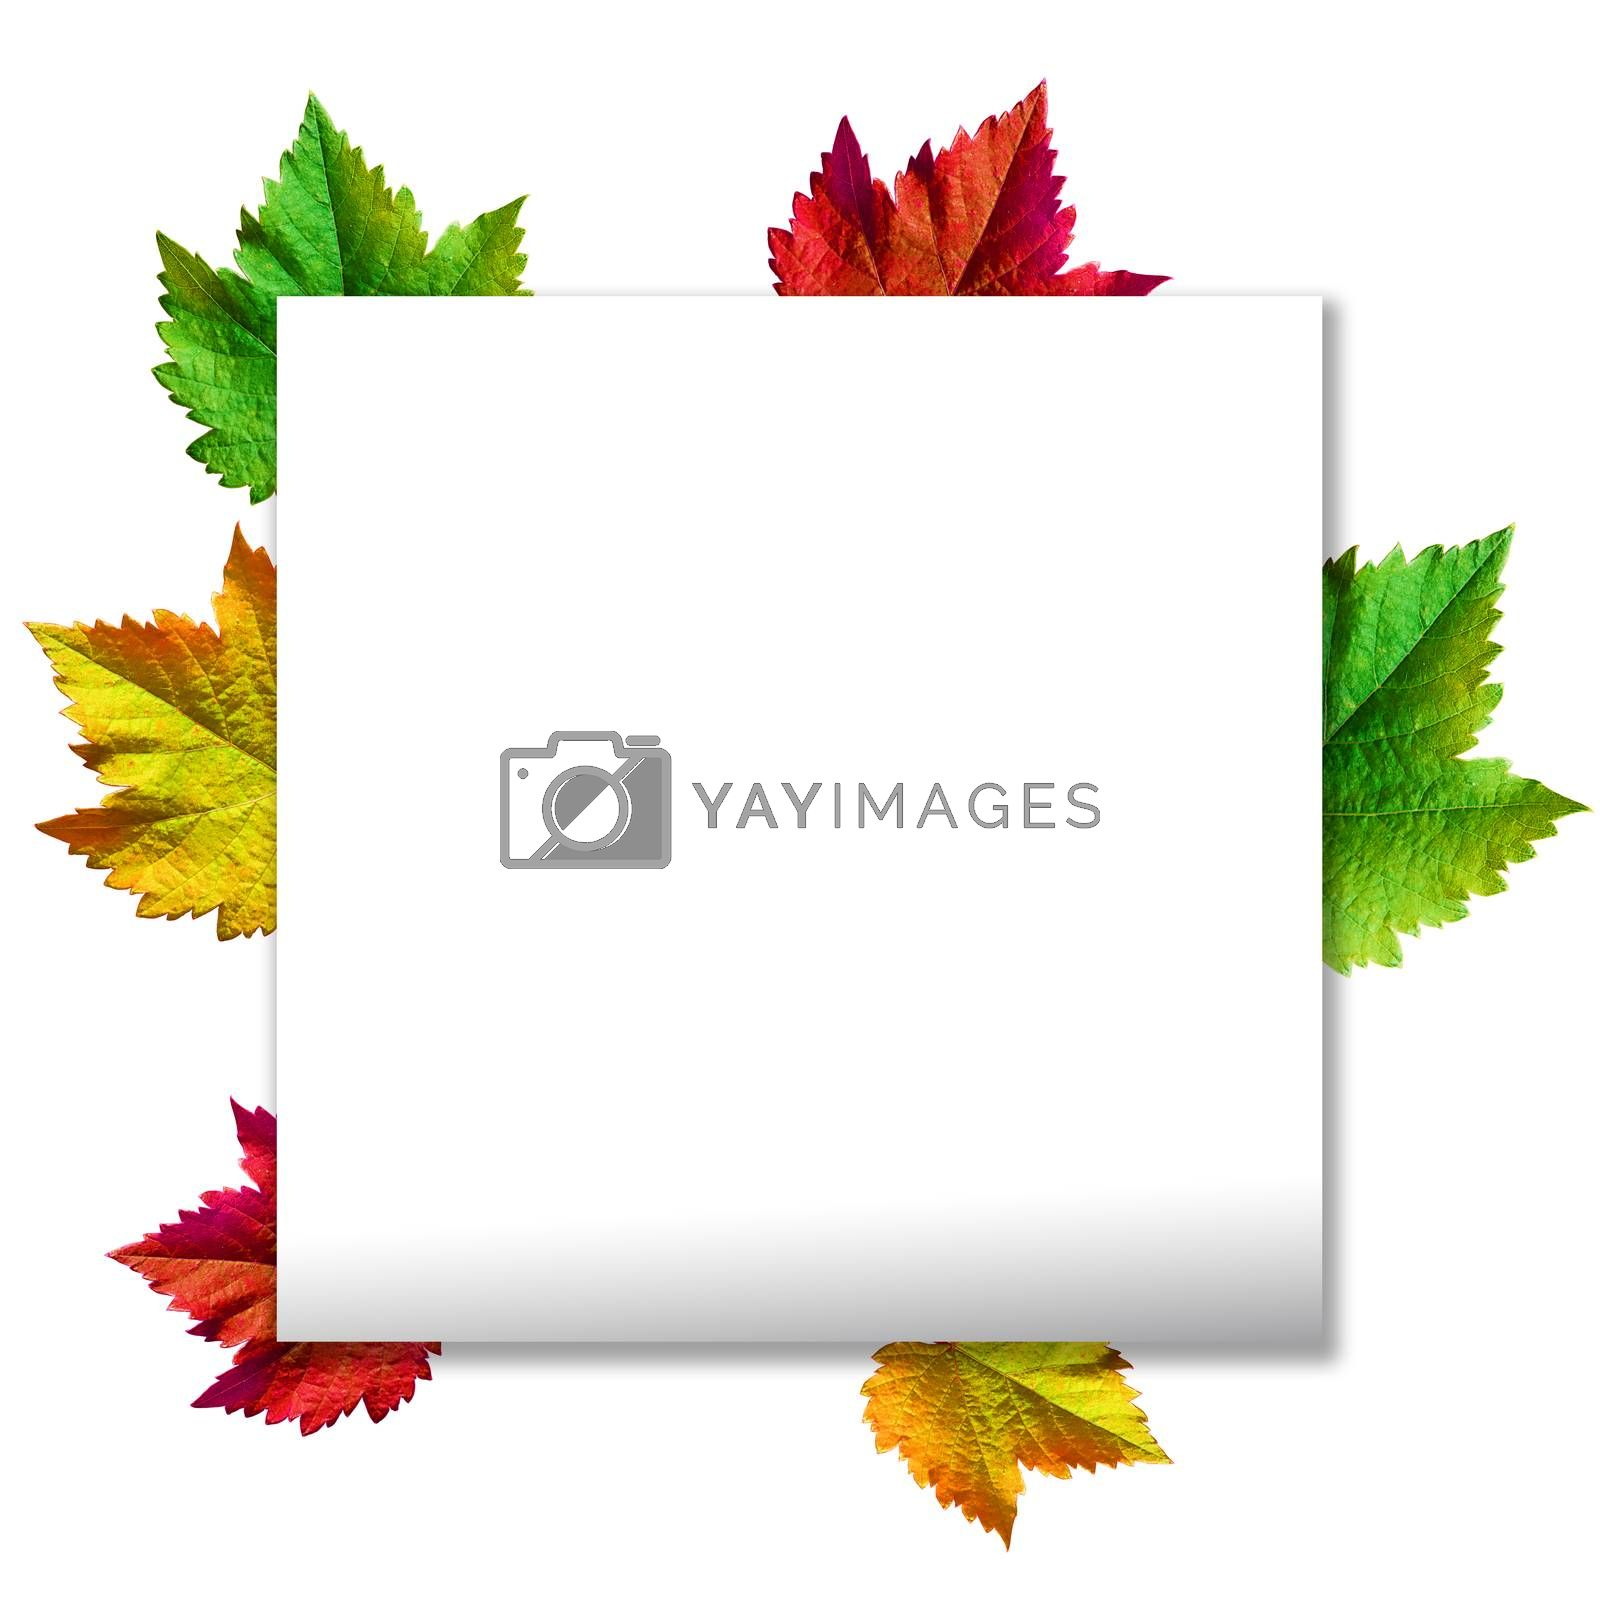 Happy Thanksgiving with text greeting and autumn leaves .Photo of Grapes green leaves wreath with clipping path included.